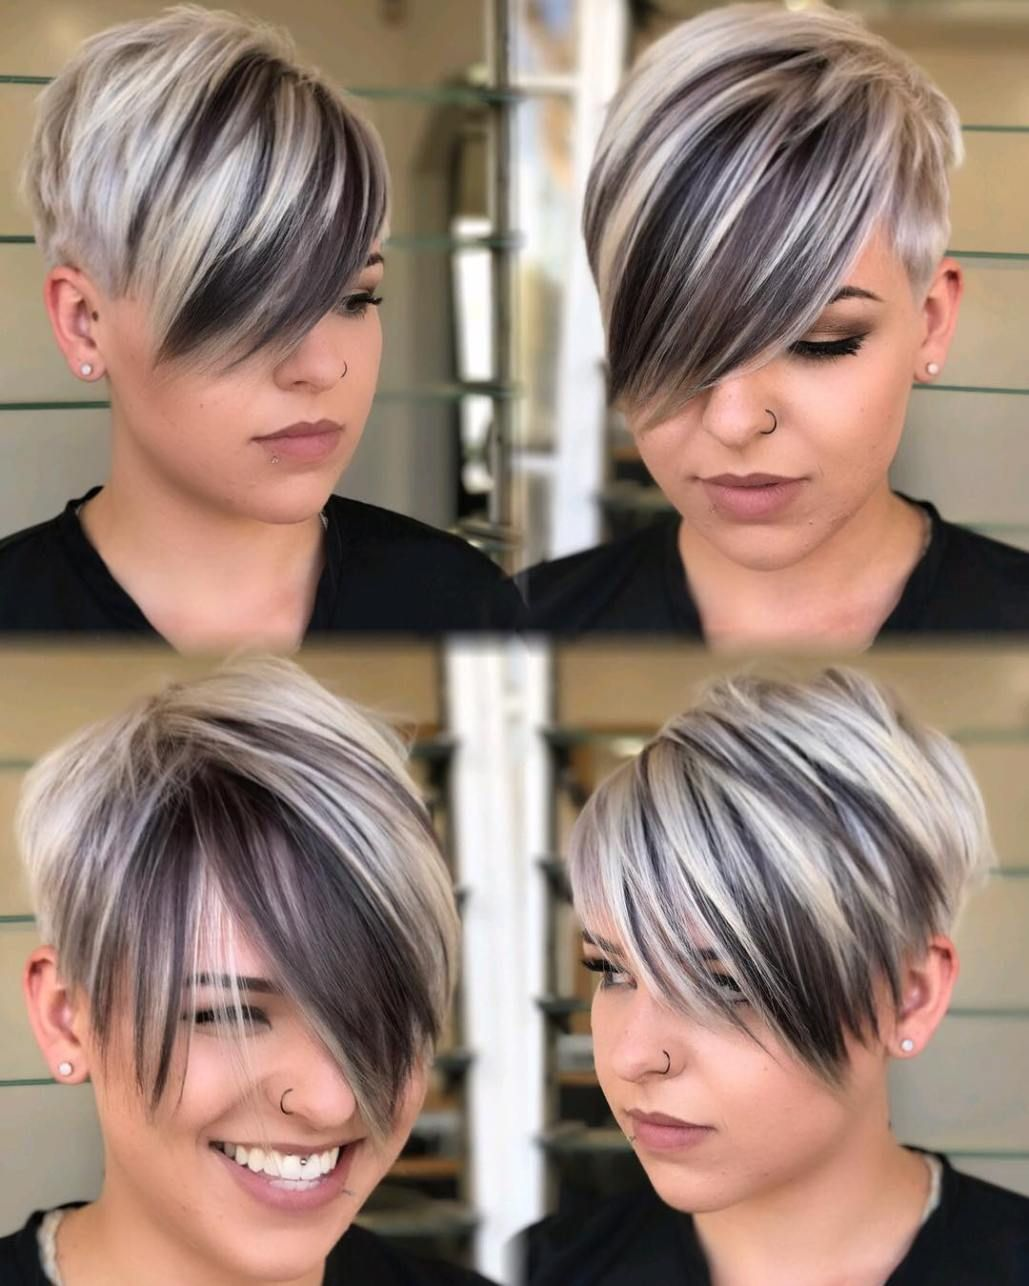 50 Short Hairstyles for Round Faces with Slimming